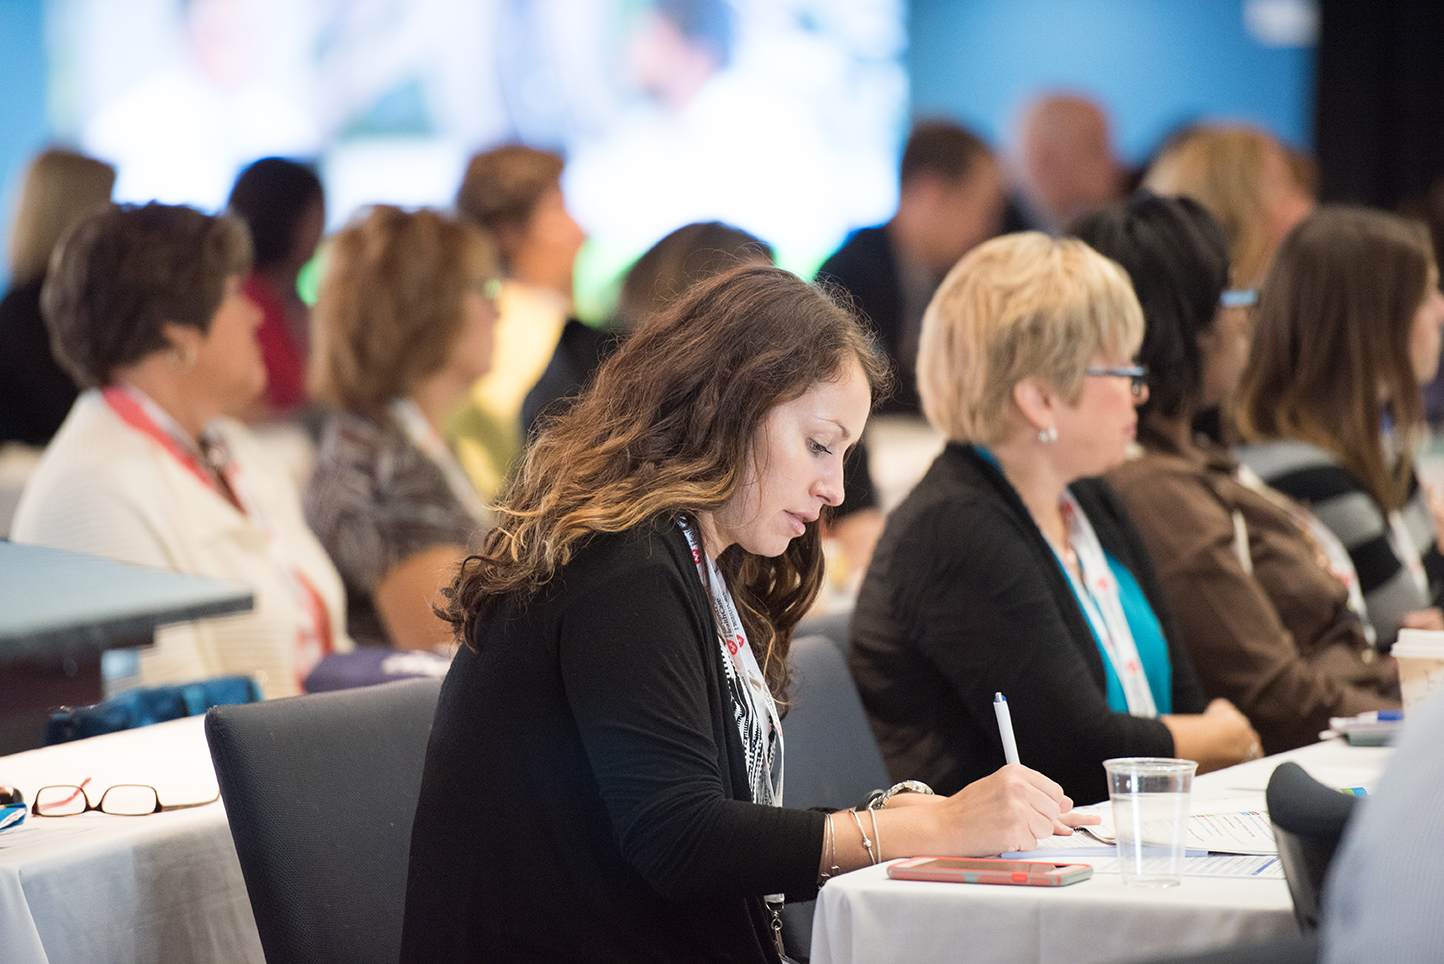 Woman at Conference